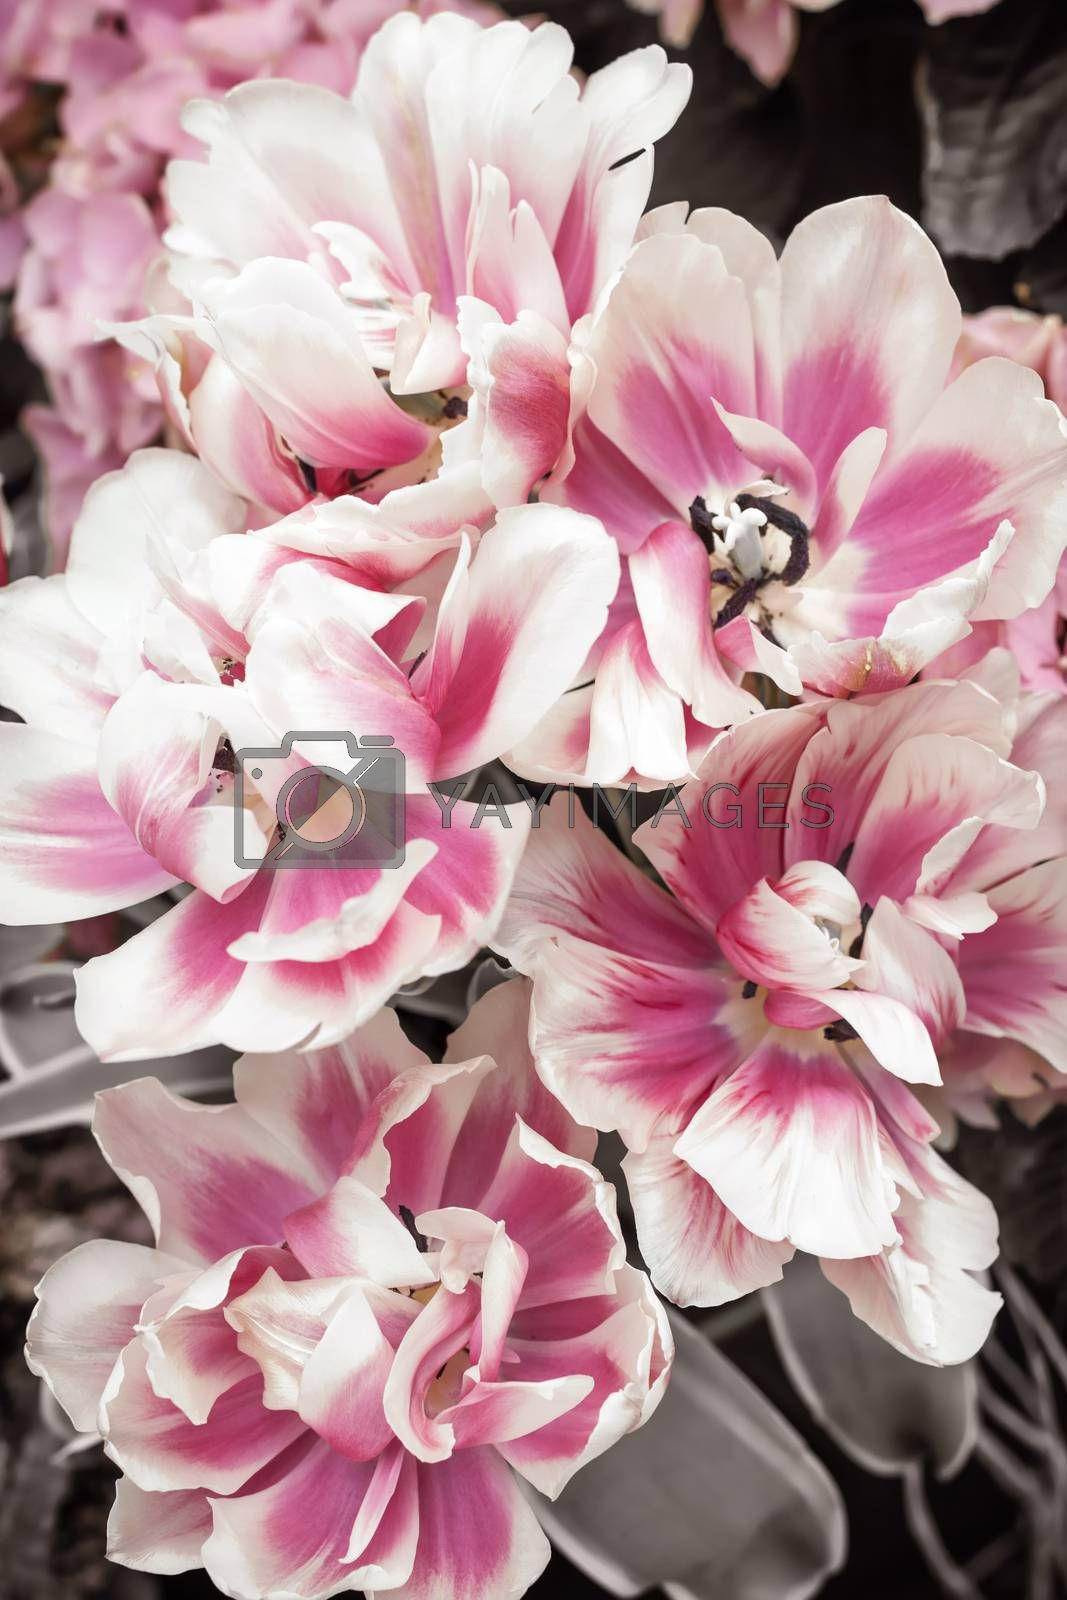 Pink and white tulips flowers close up